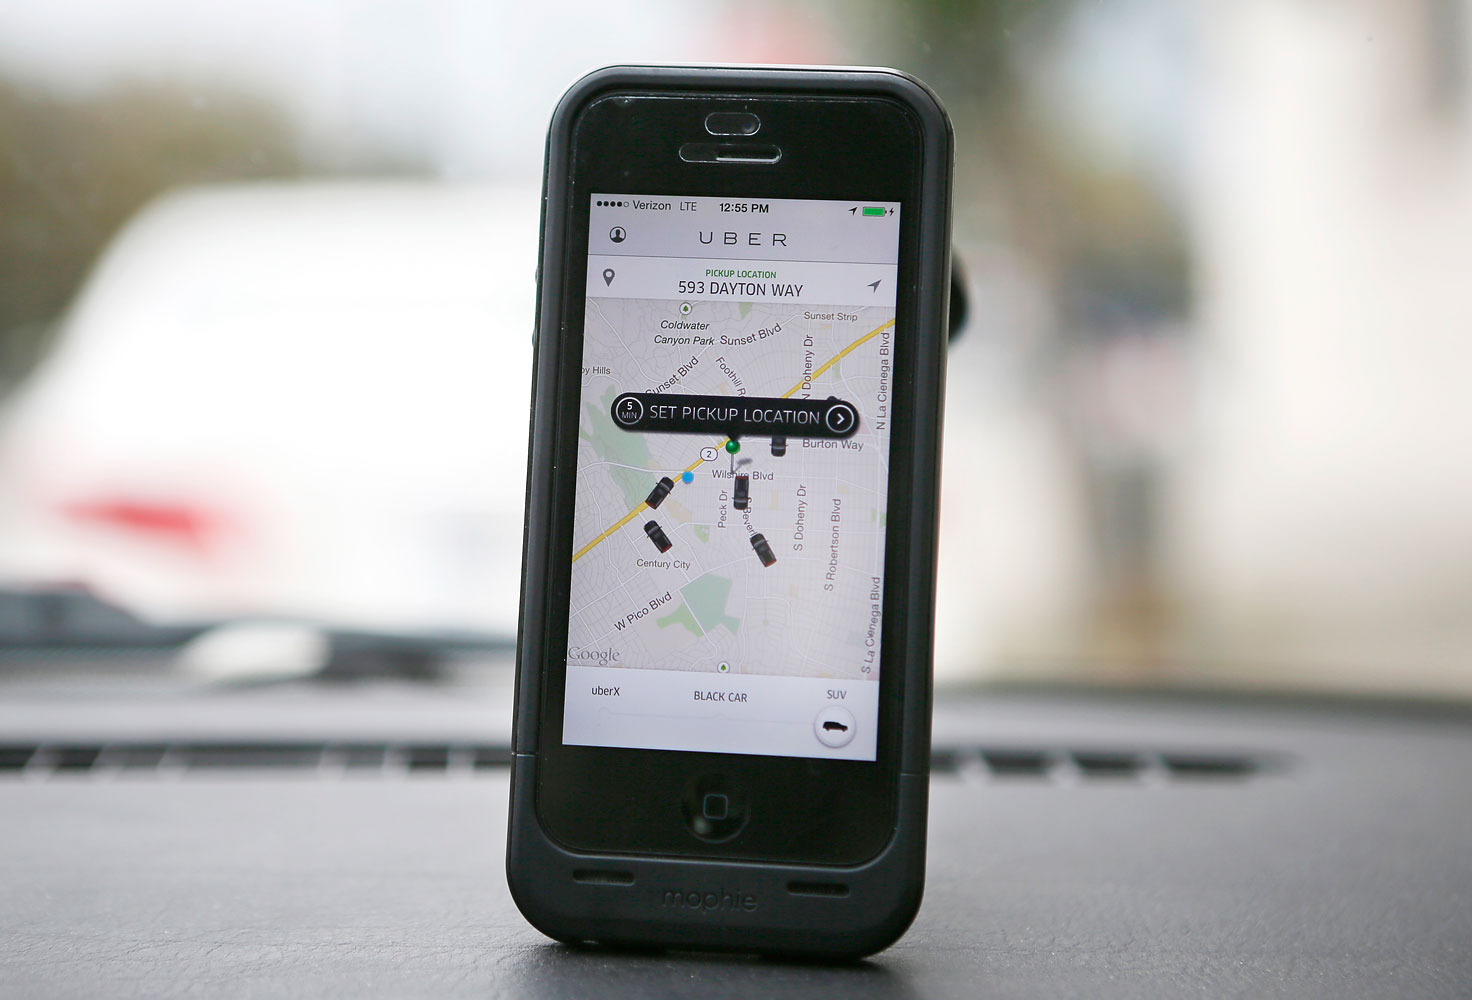 An Uber app is seen on an iPhone in Beverly Hills, Calif., on Dec. 19, 2013.